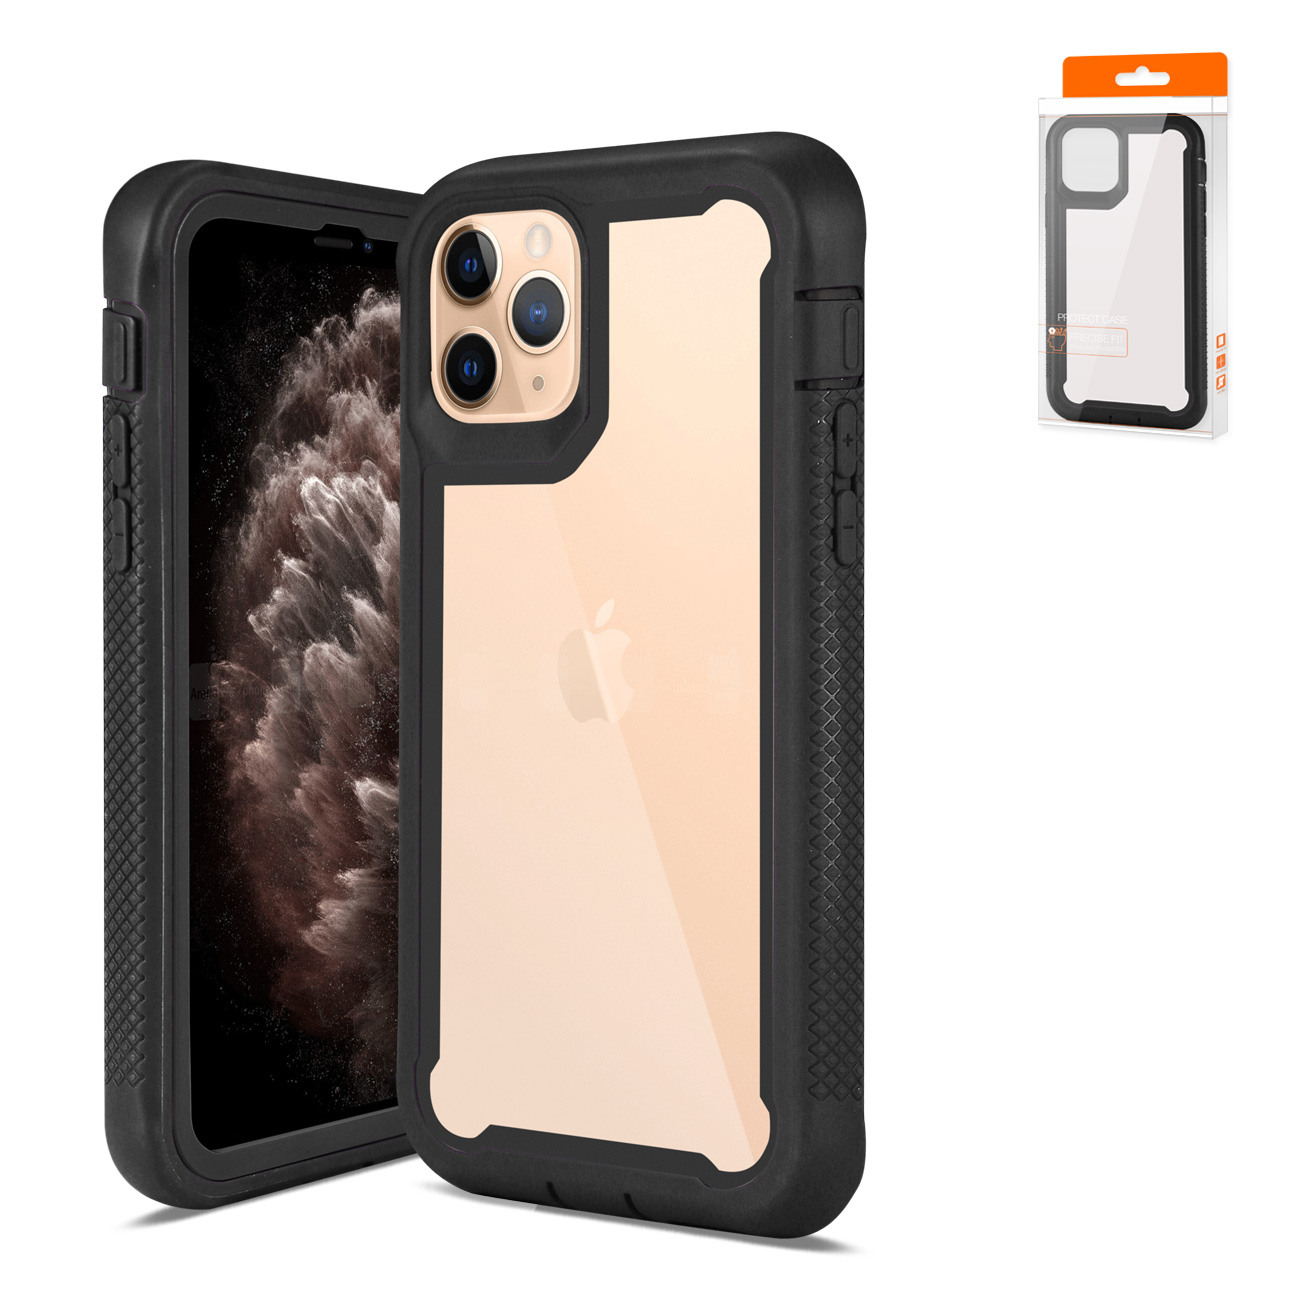 APPLE IPHONE 11 PRO MAX Bumper Case In Black And Clear